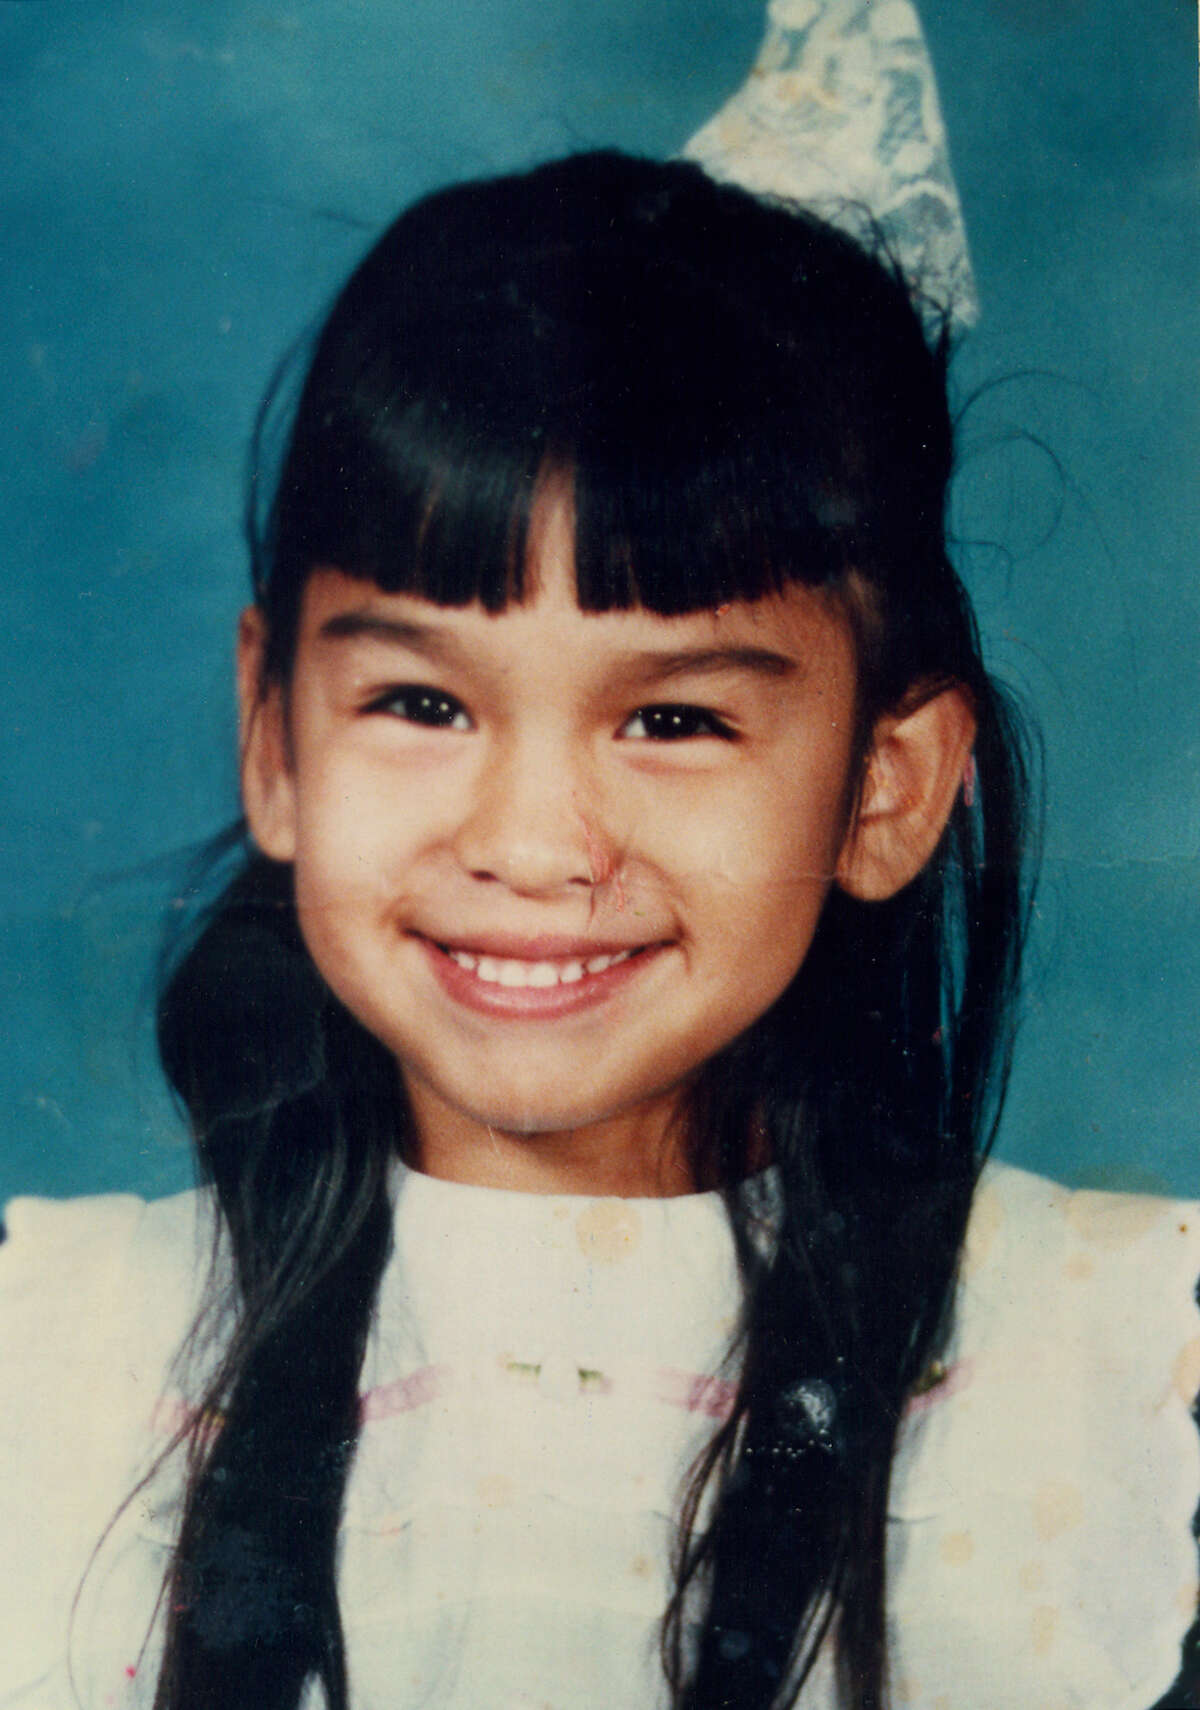 Erica Botello was abducted from her West Side Apartment Complex and later killed in August of 1990. No one has ever been convicted in the case.